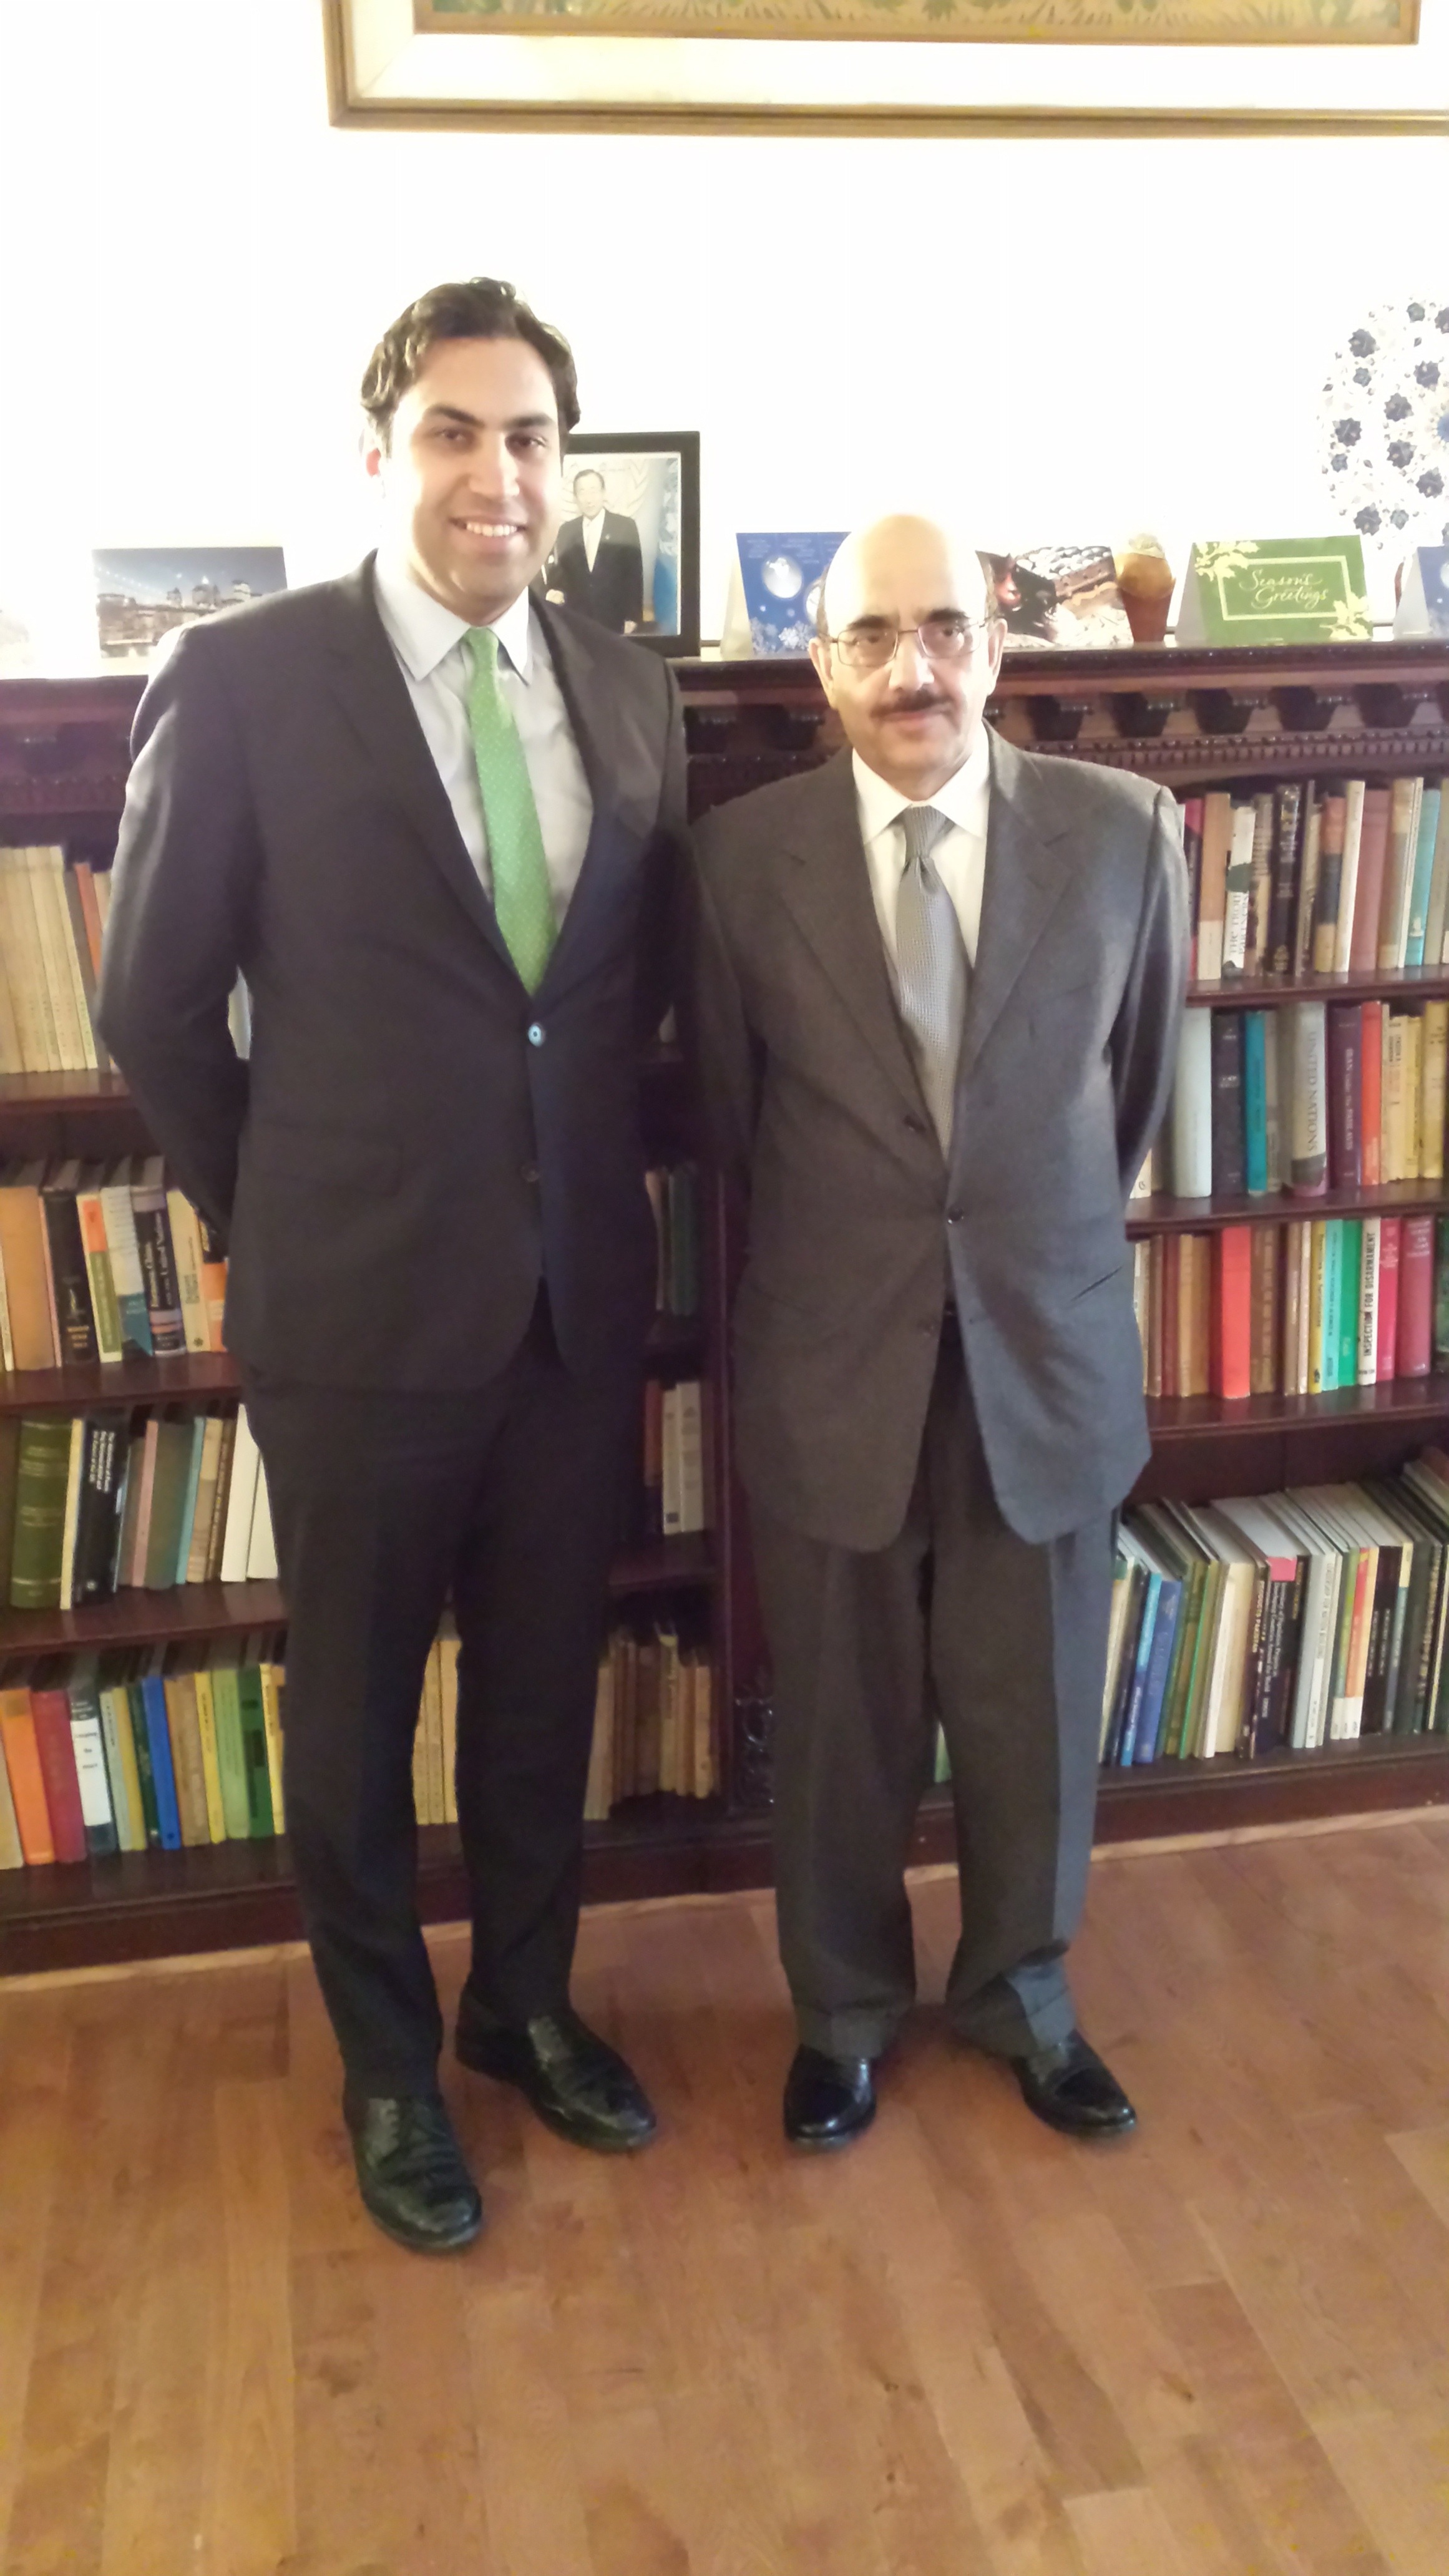 UN Envoy on Youth with UN Permanent Representative of Pakistan